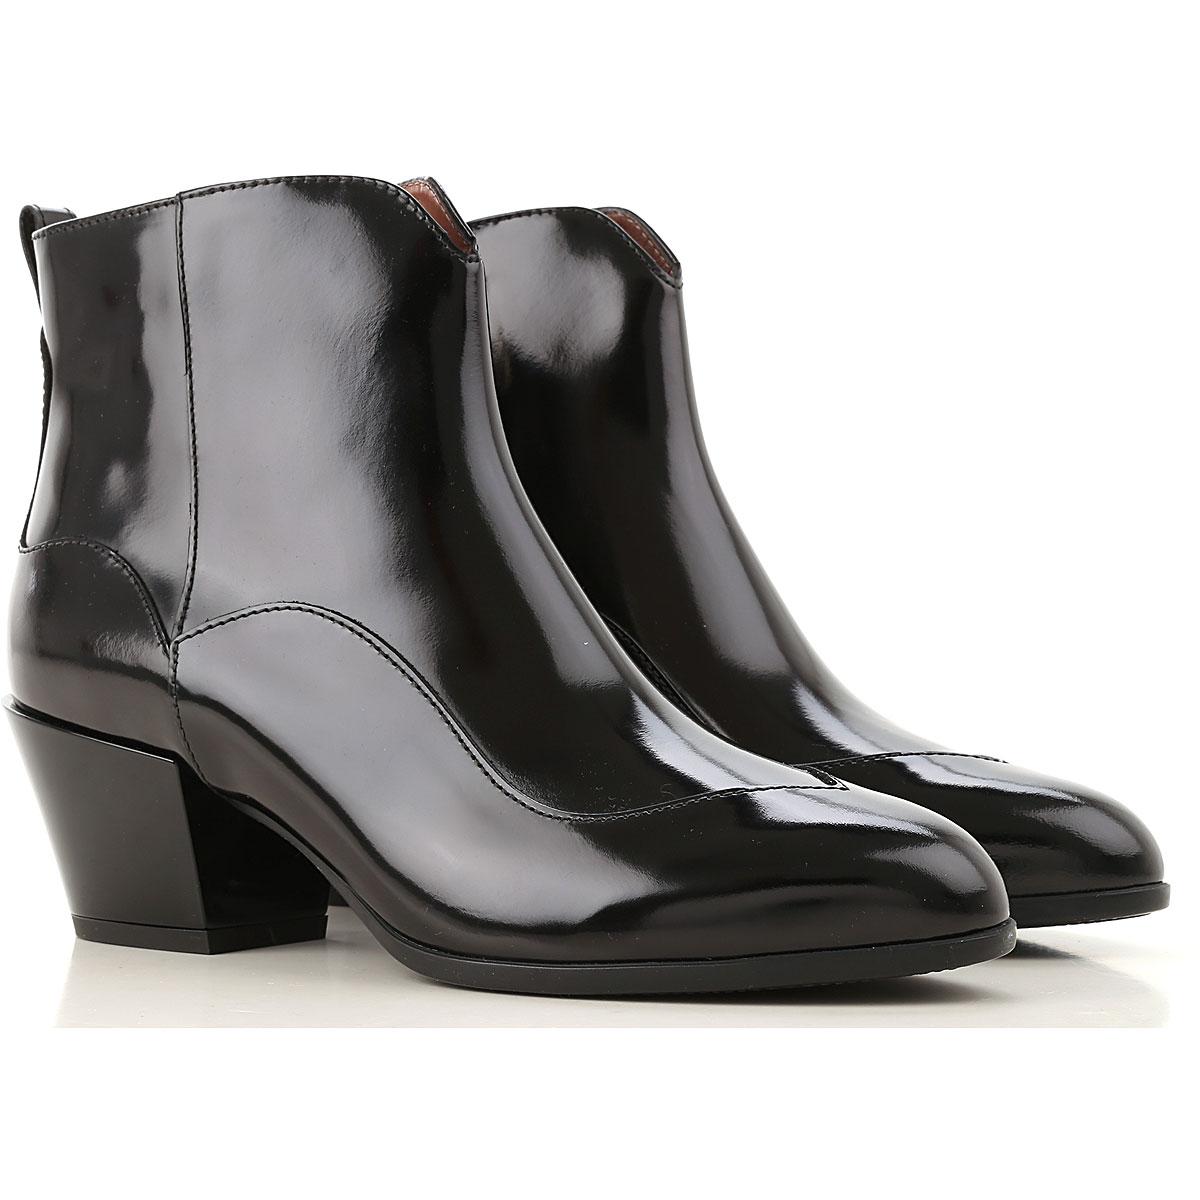 Hogan Boots for Women, Booties On Sale, Black, Patent Leather, 2019, 5 6 6.5 8 8.5 9